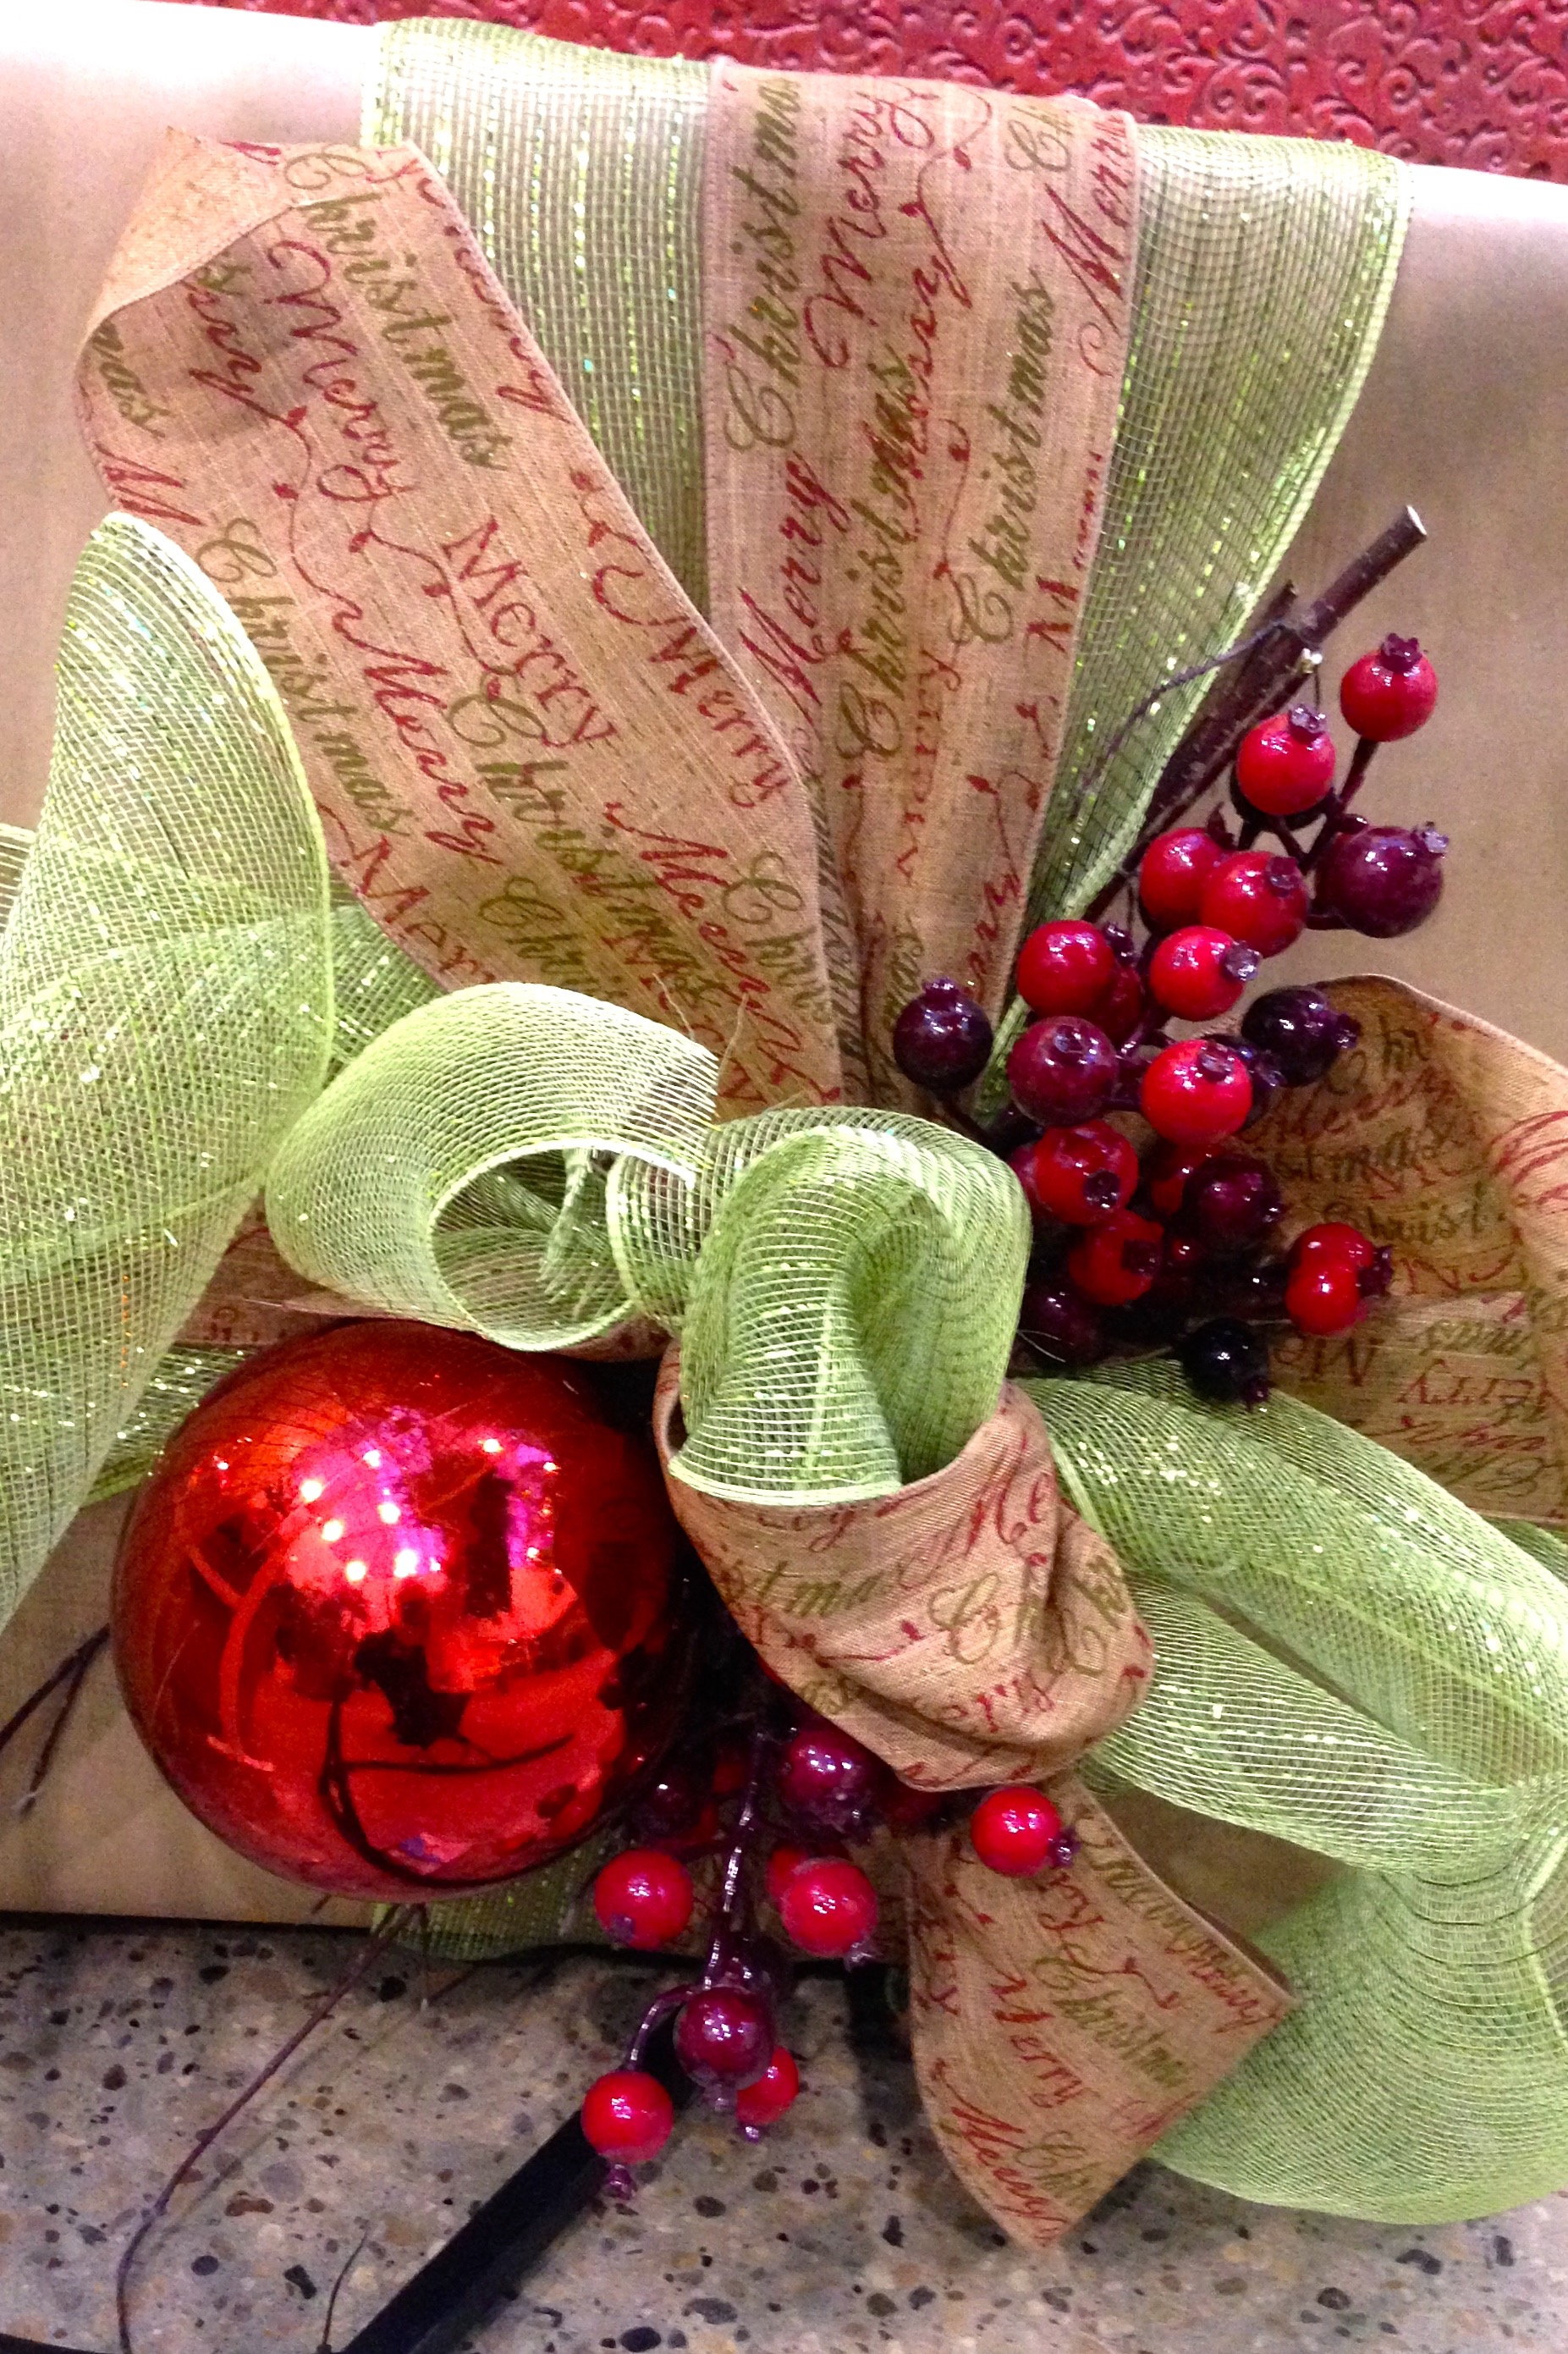 Christmas gift wrapped in brown paper and green and burlap bows with red ornaments.